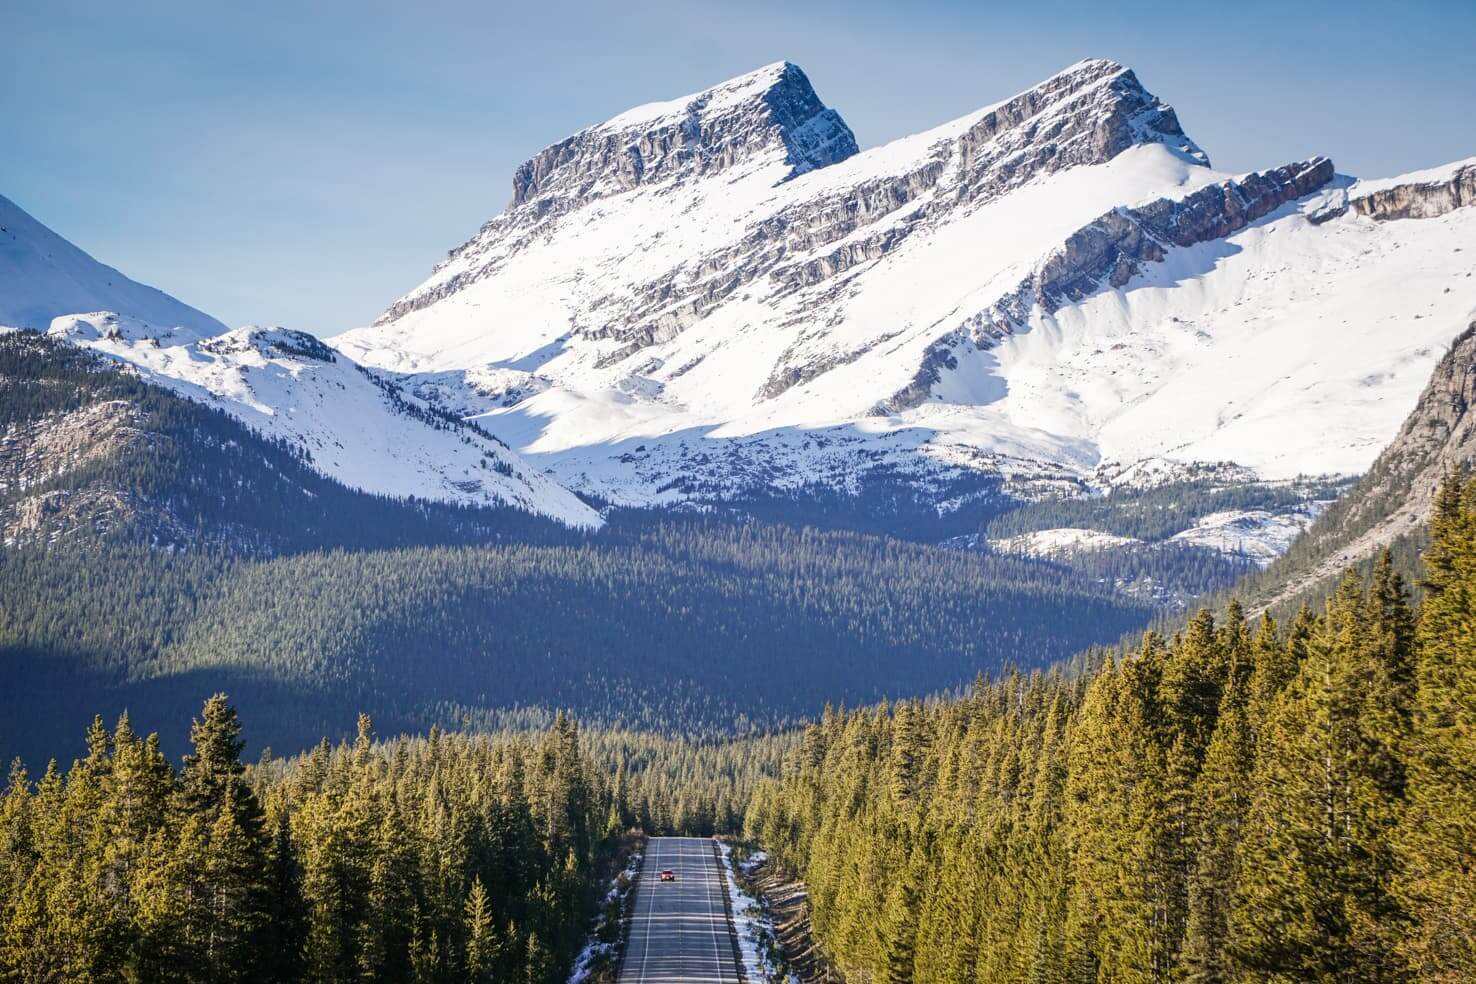 Icefields Parkway itinerary - Icefields Parkway